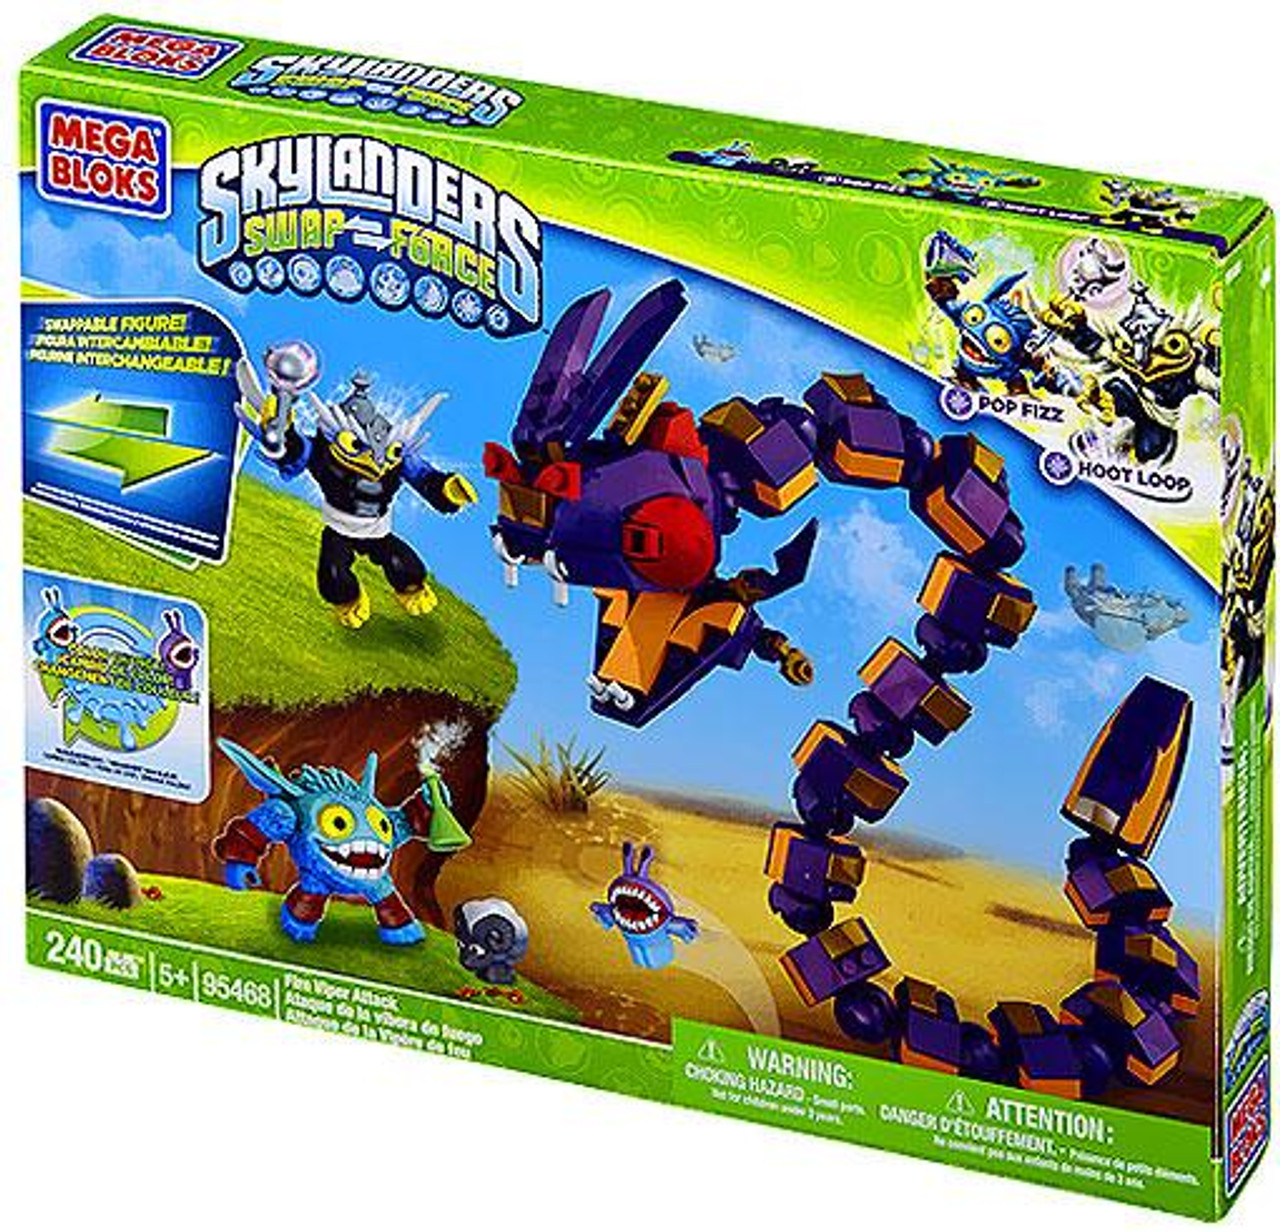 Mega Bloks Skylanders Swap Force Fire Viper Attack Exclusive Set #95468